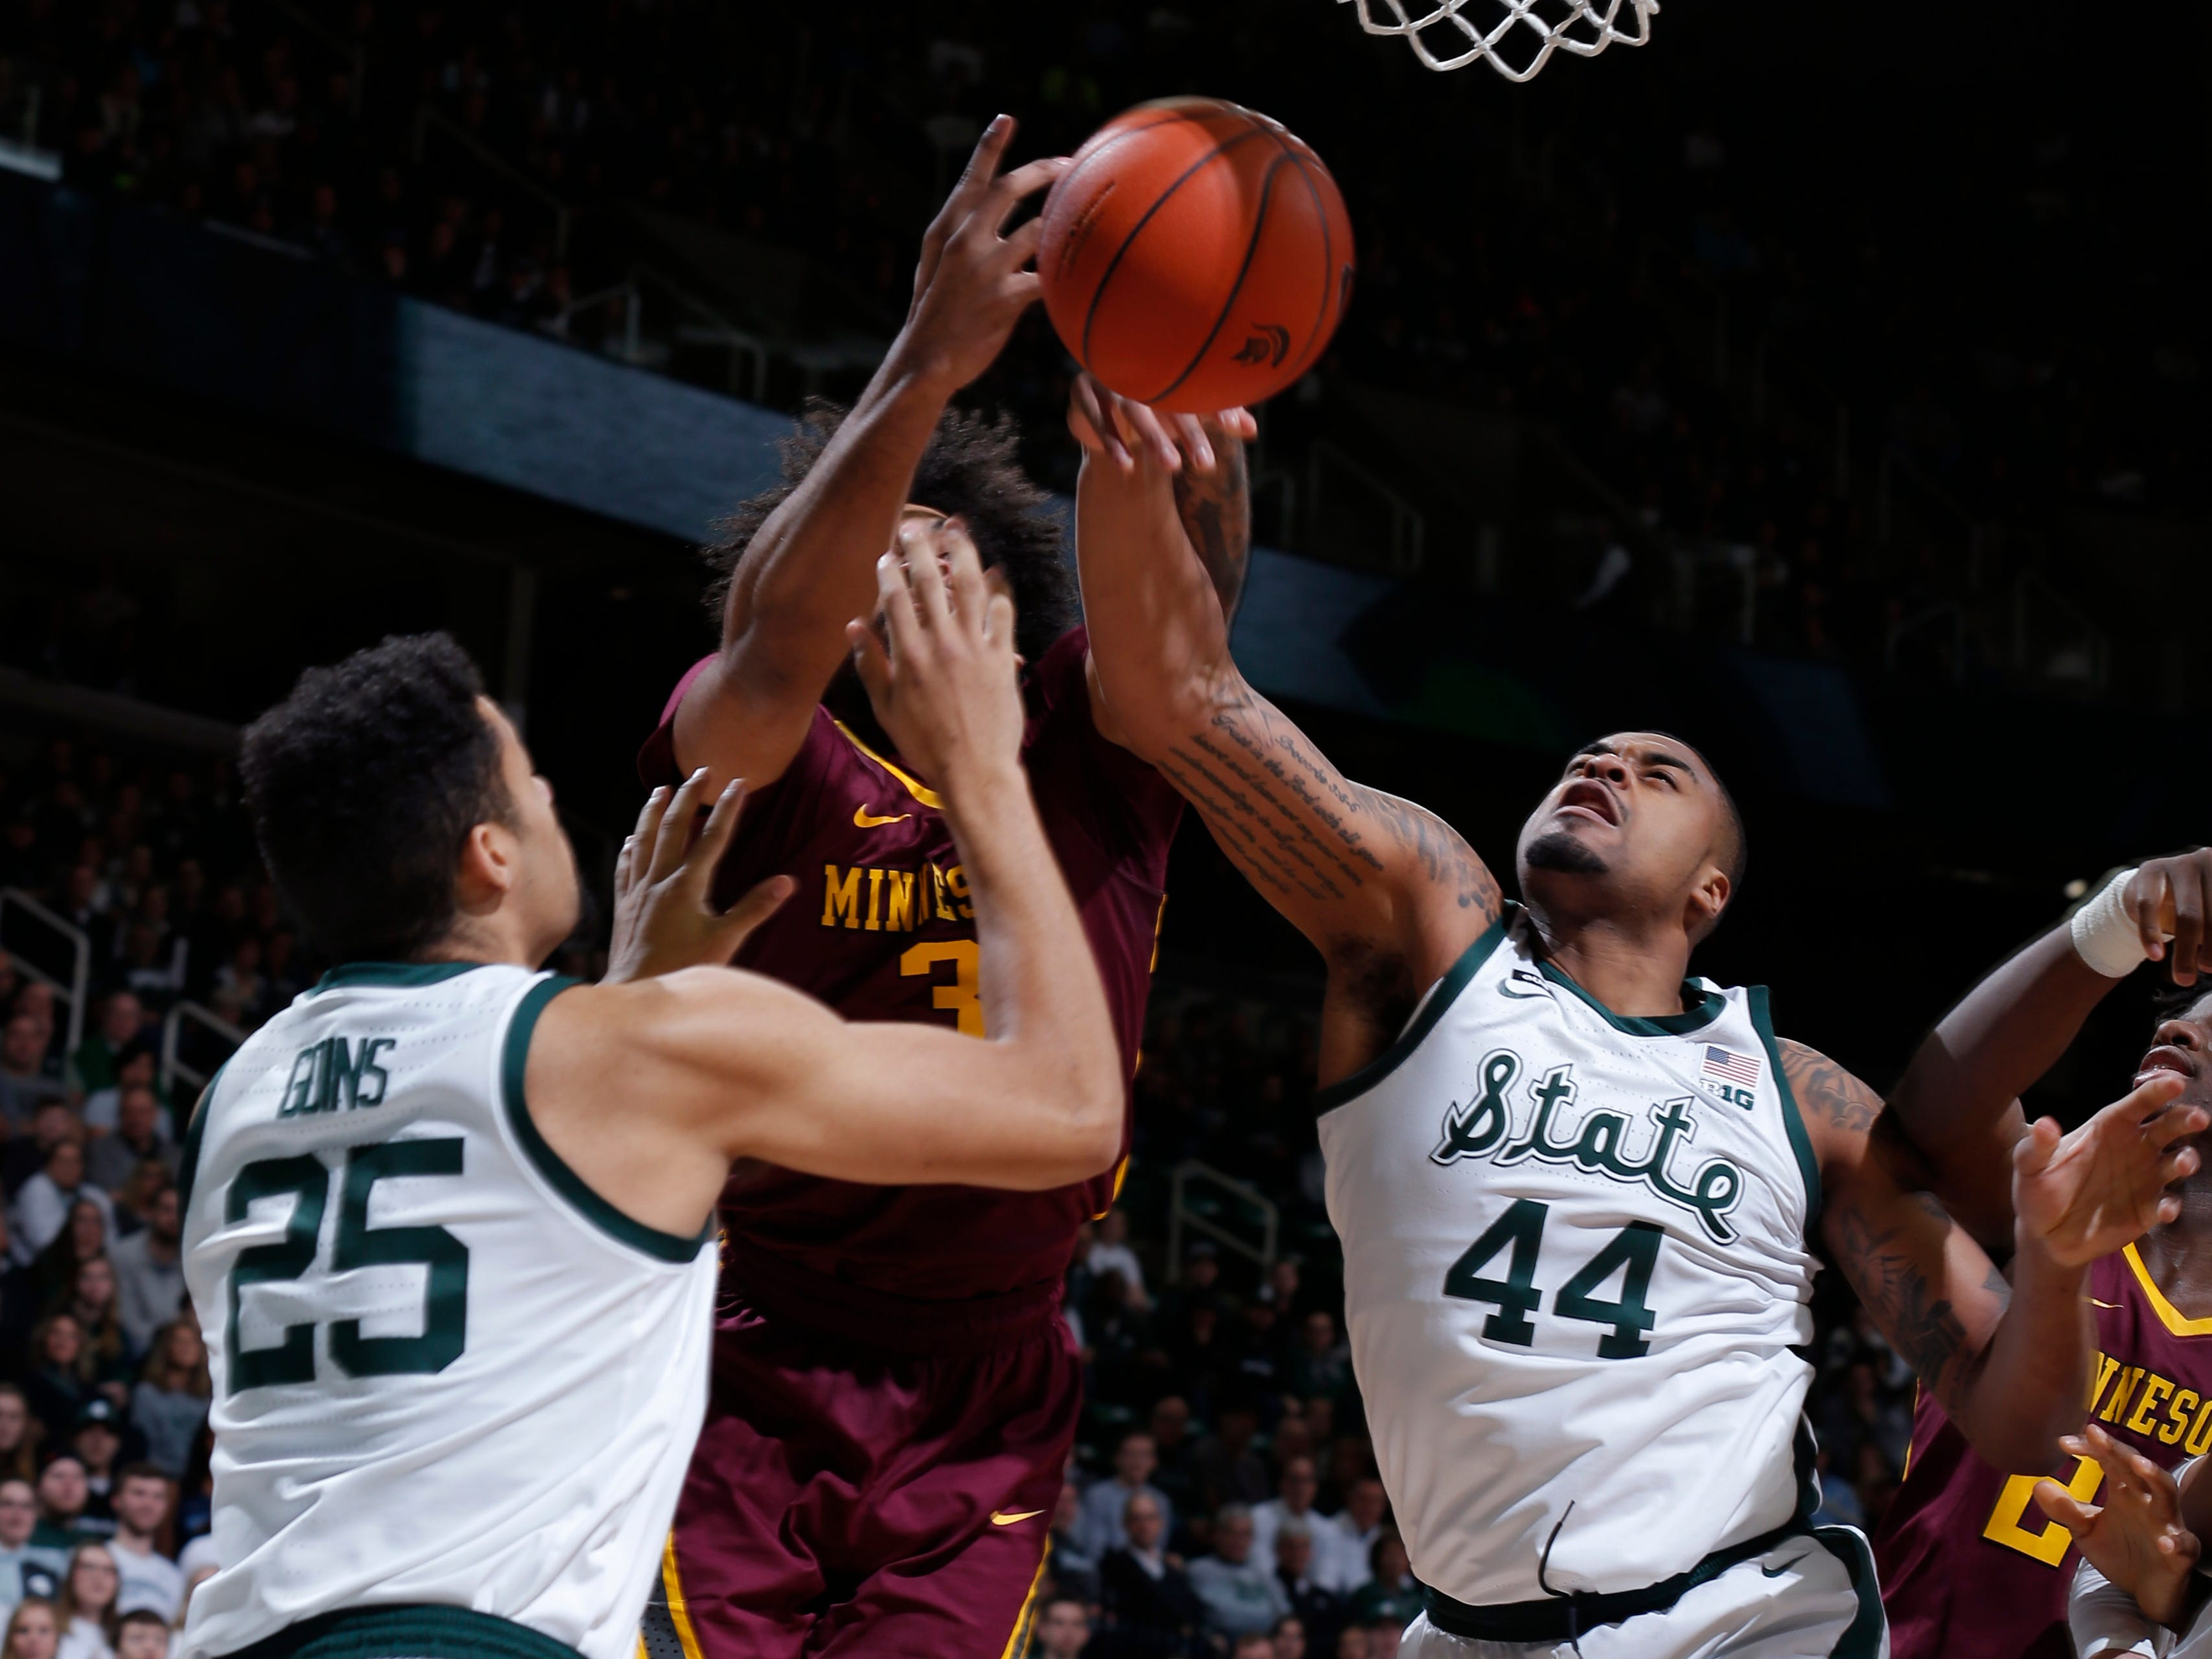 Michigan State's Nick Ward (44) and Kenny Goins (25) and Minnesota's Jordan Murphy, center, vie for a rebound during the first half.